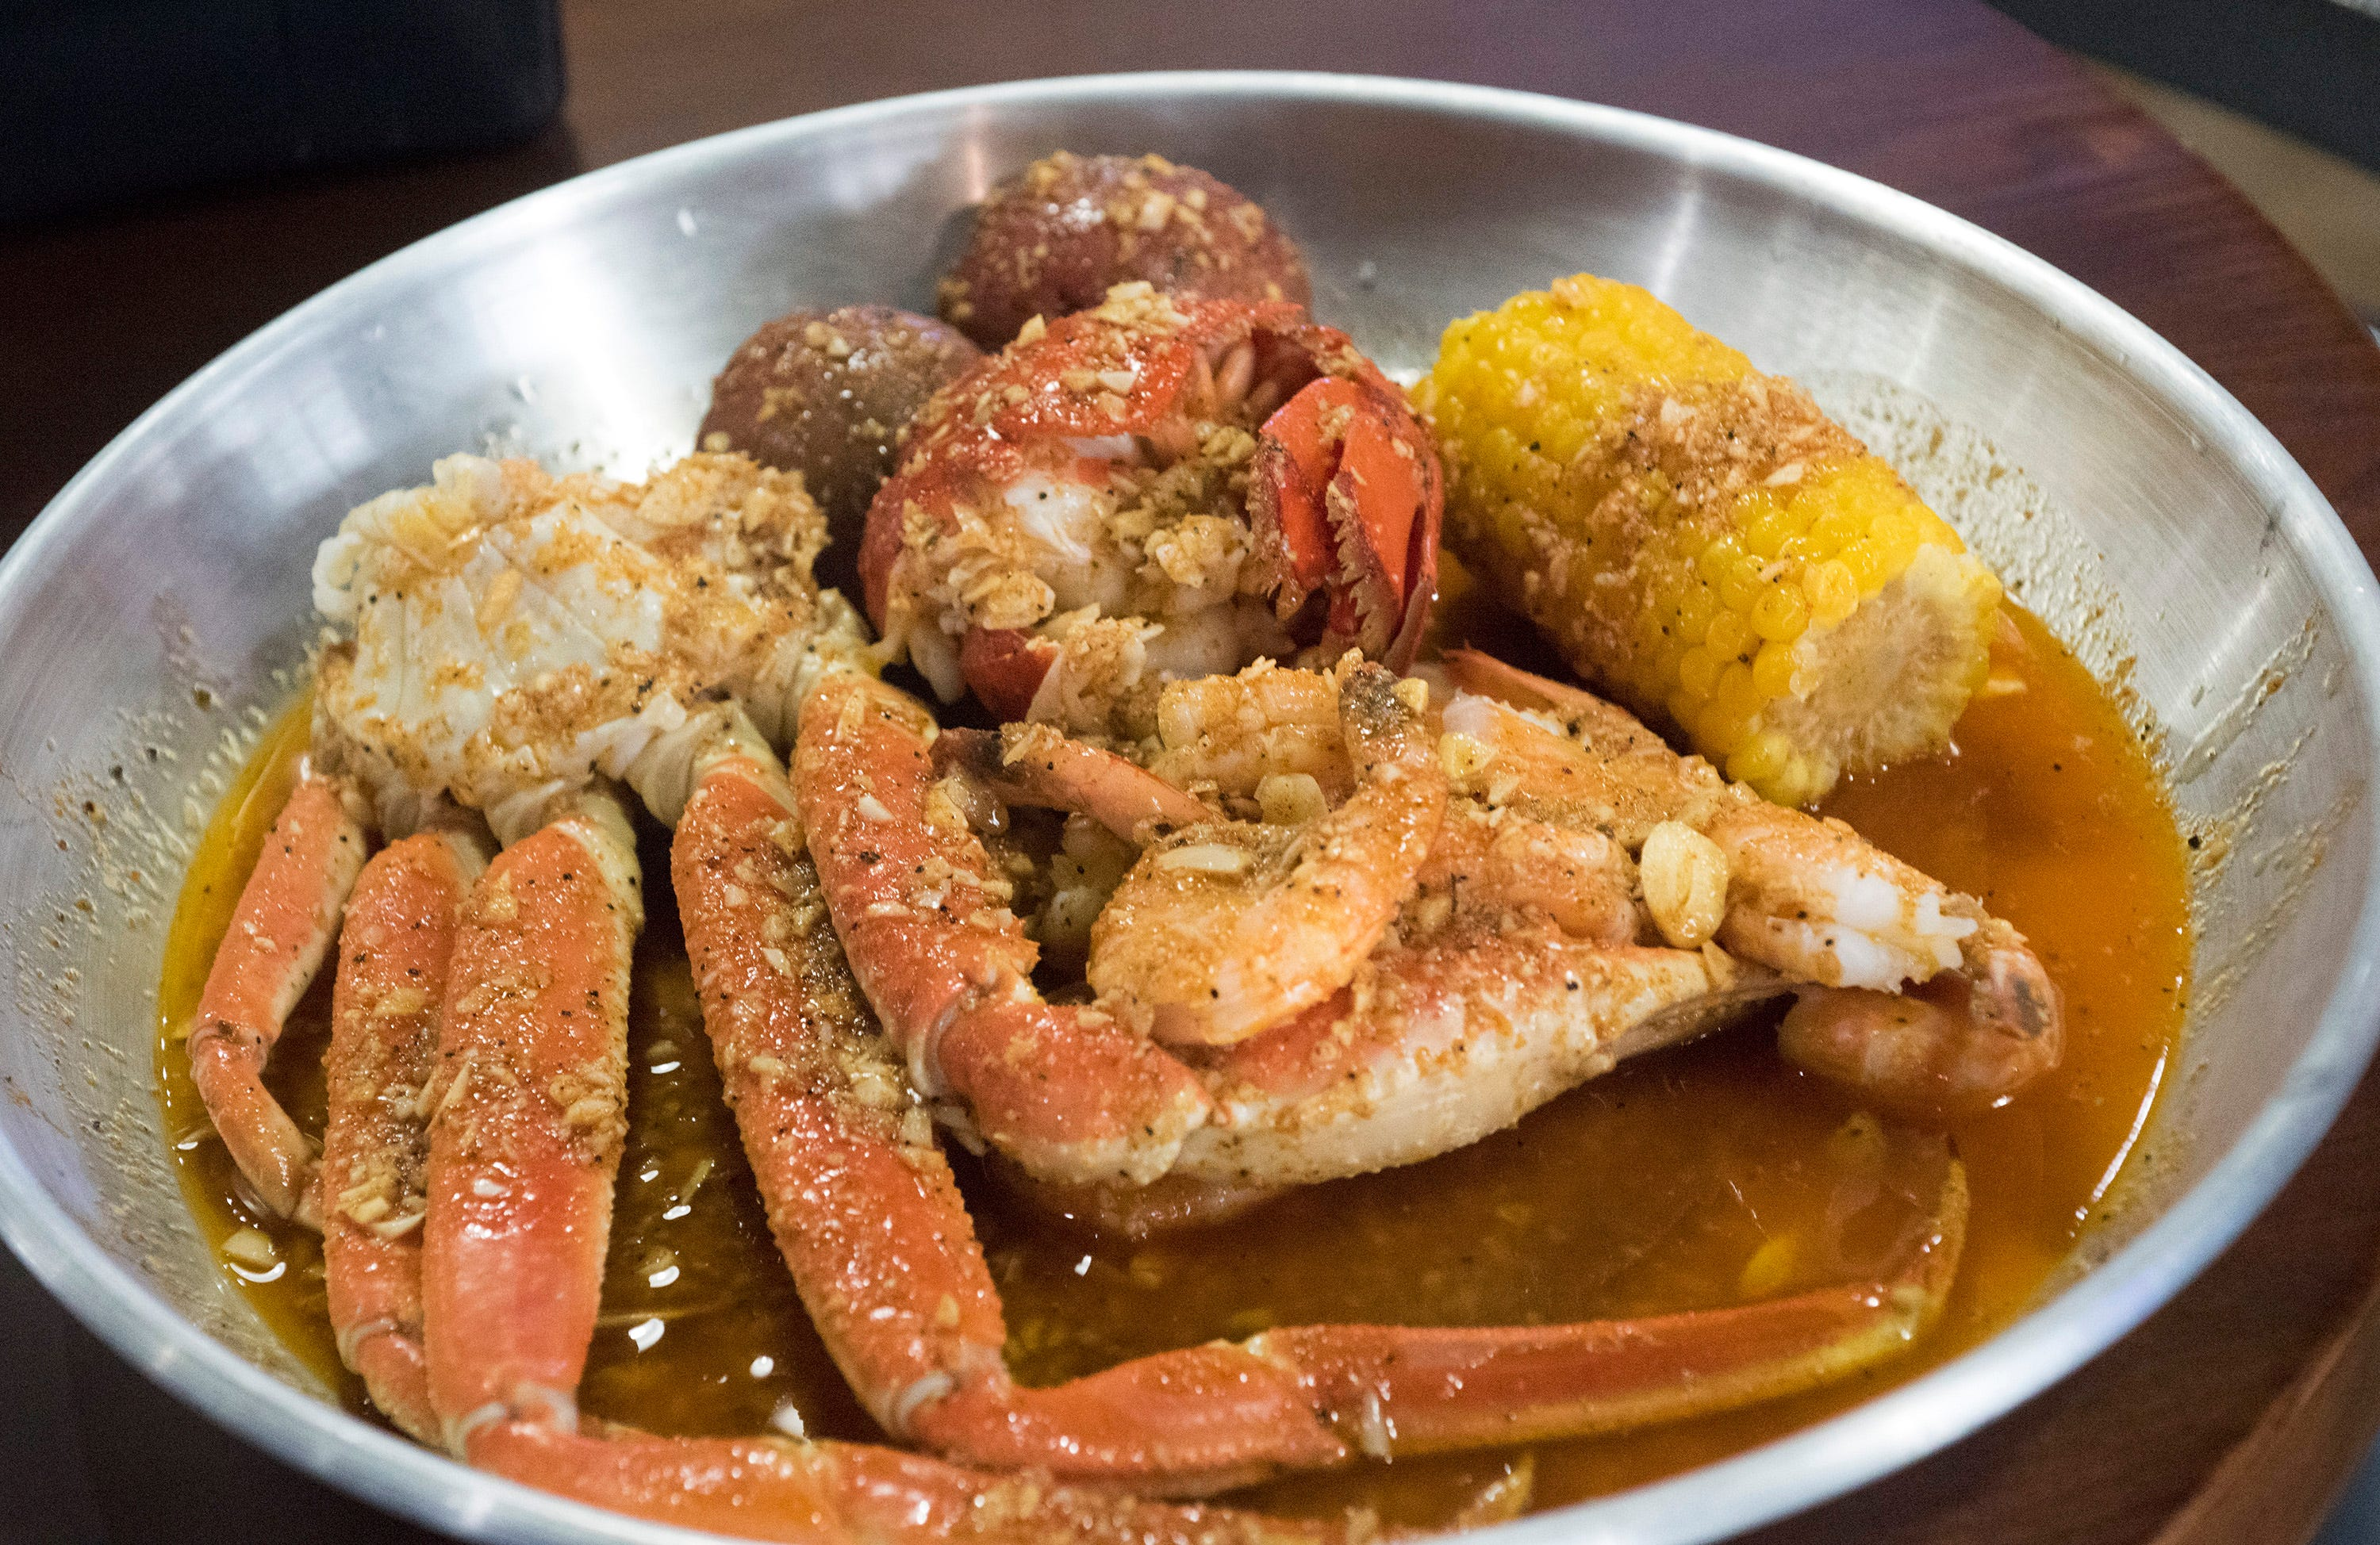 Red Crab Juicy Seafood Specializing In Low Country Seafood Boils Is Open In Pensacola